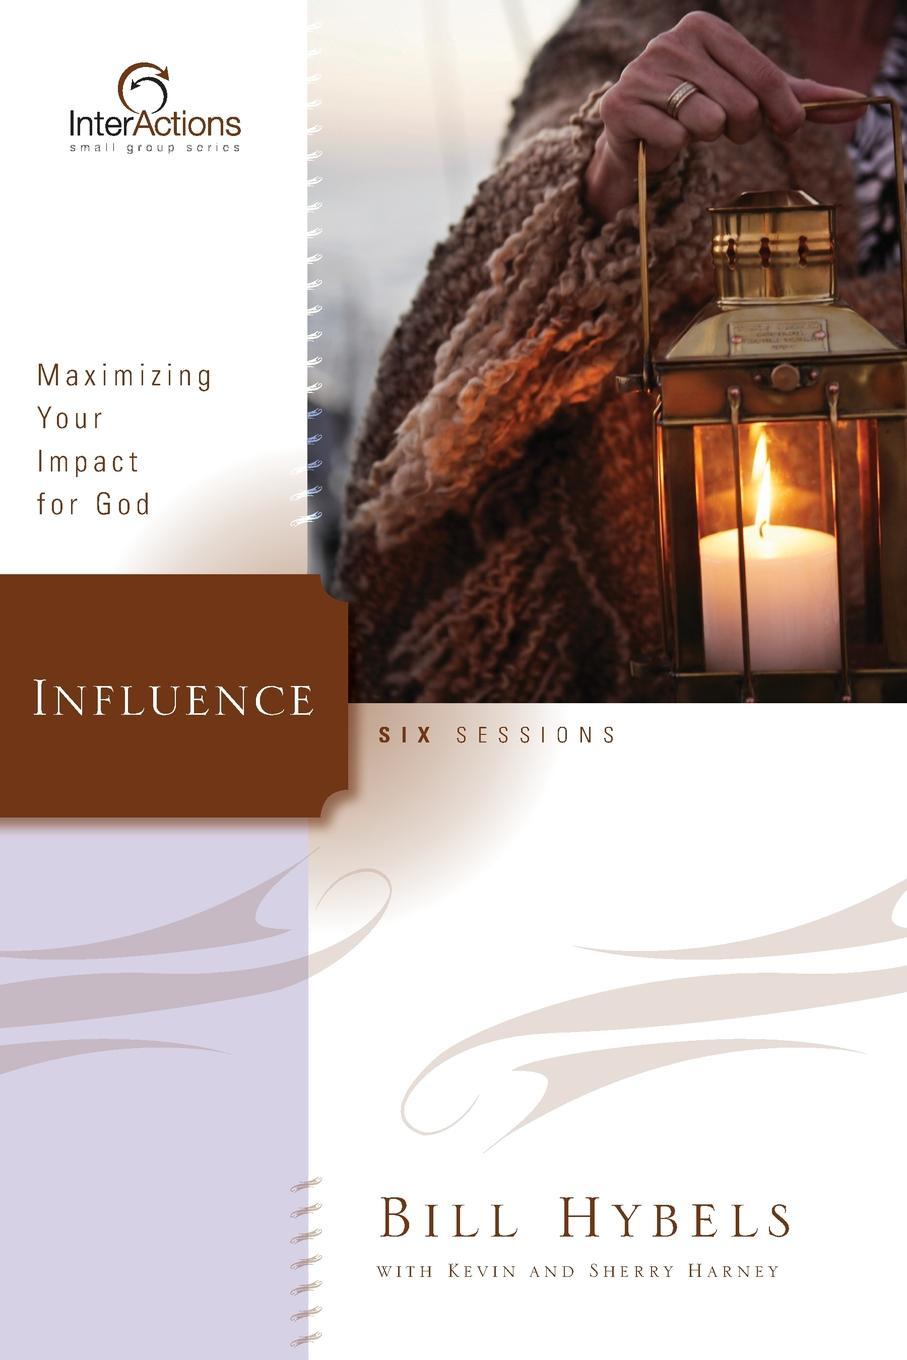 Bill Hybels Influence. Maximizing Your Impact for God bill hybels sermon on the mount 1 connect with god